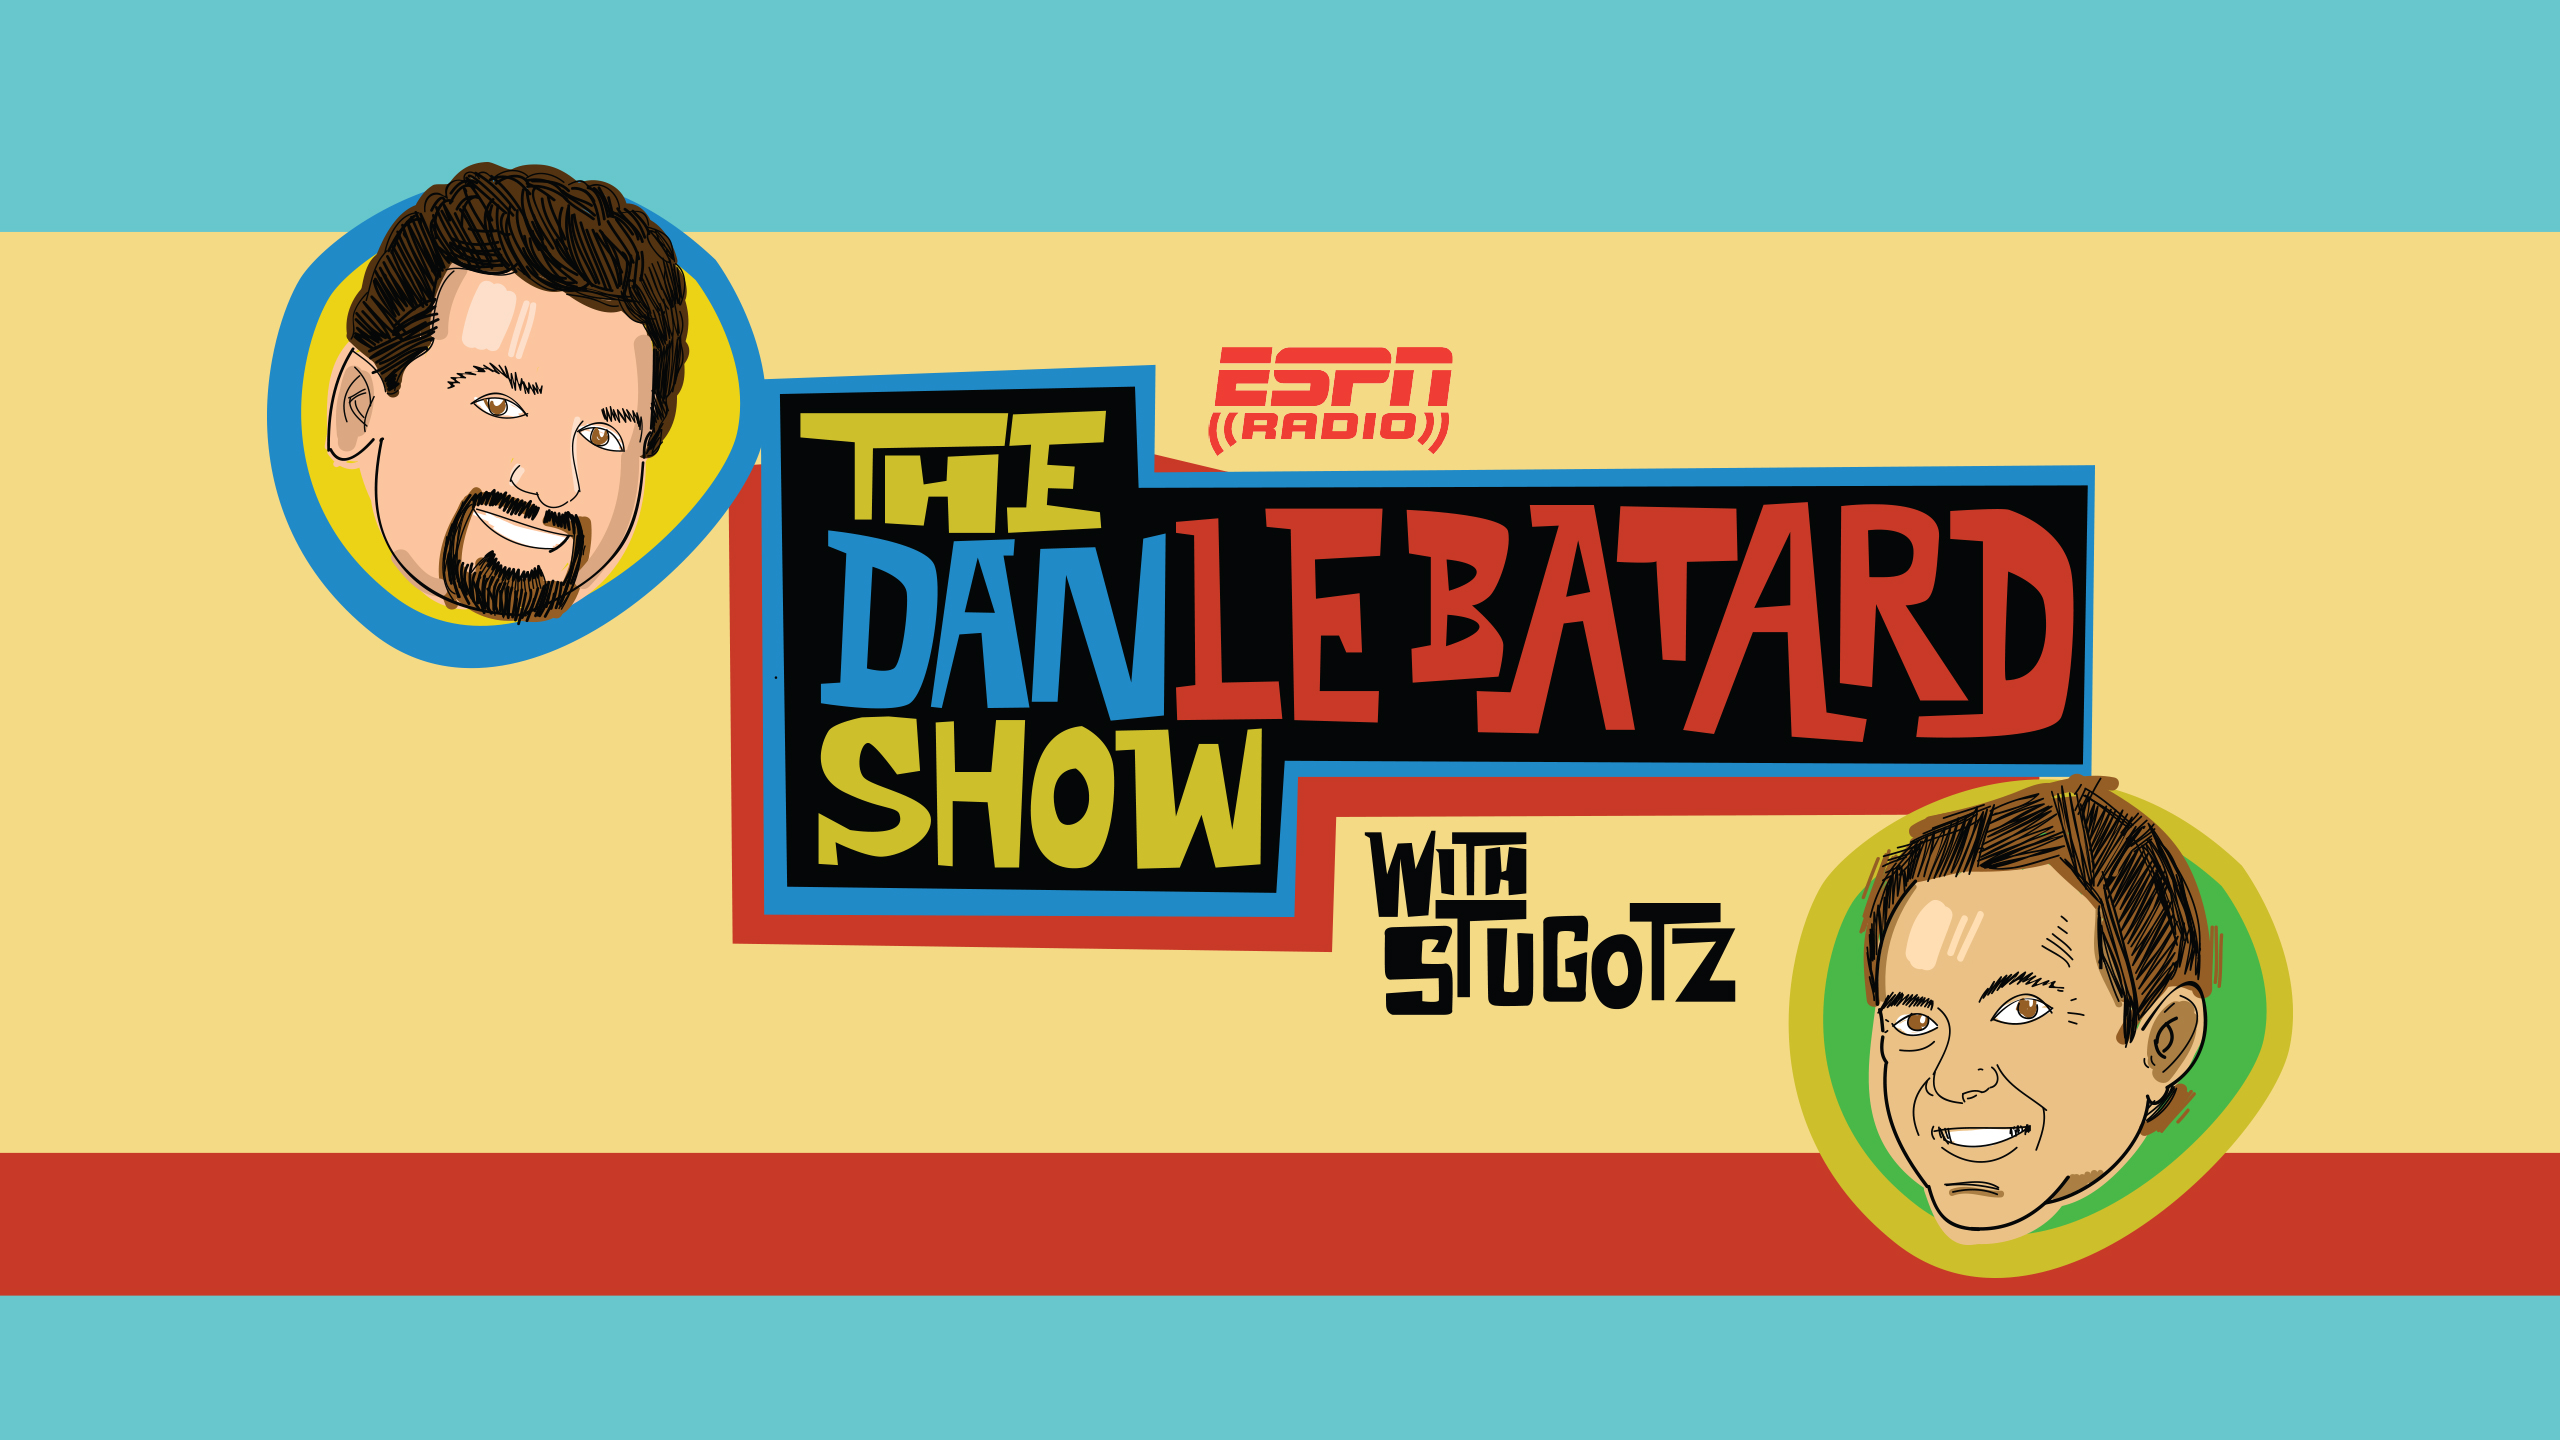 Mon, 11/12 - The Dan Le Batard Show with Stugotz Presented by Progressive